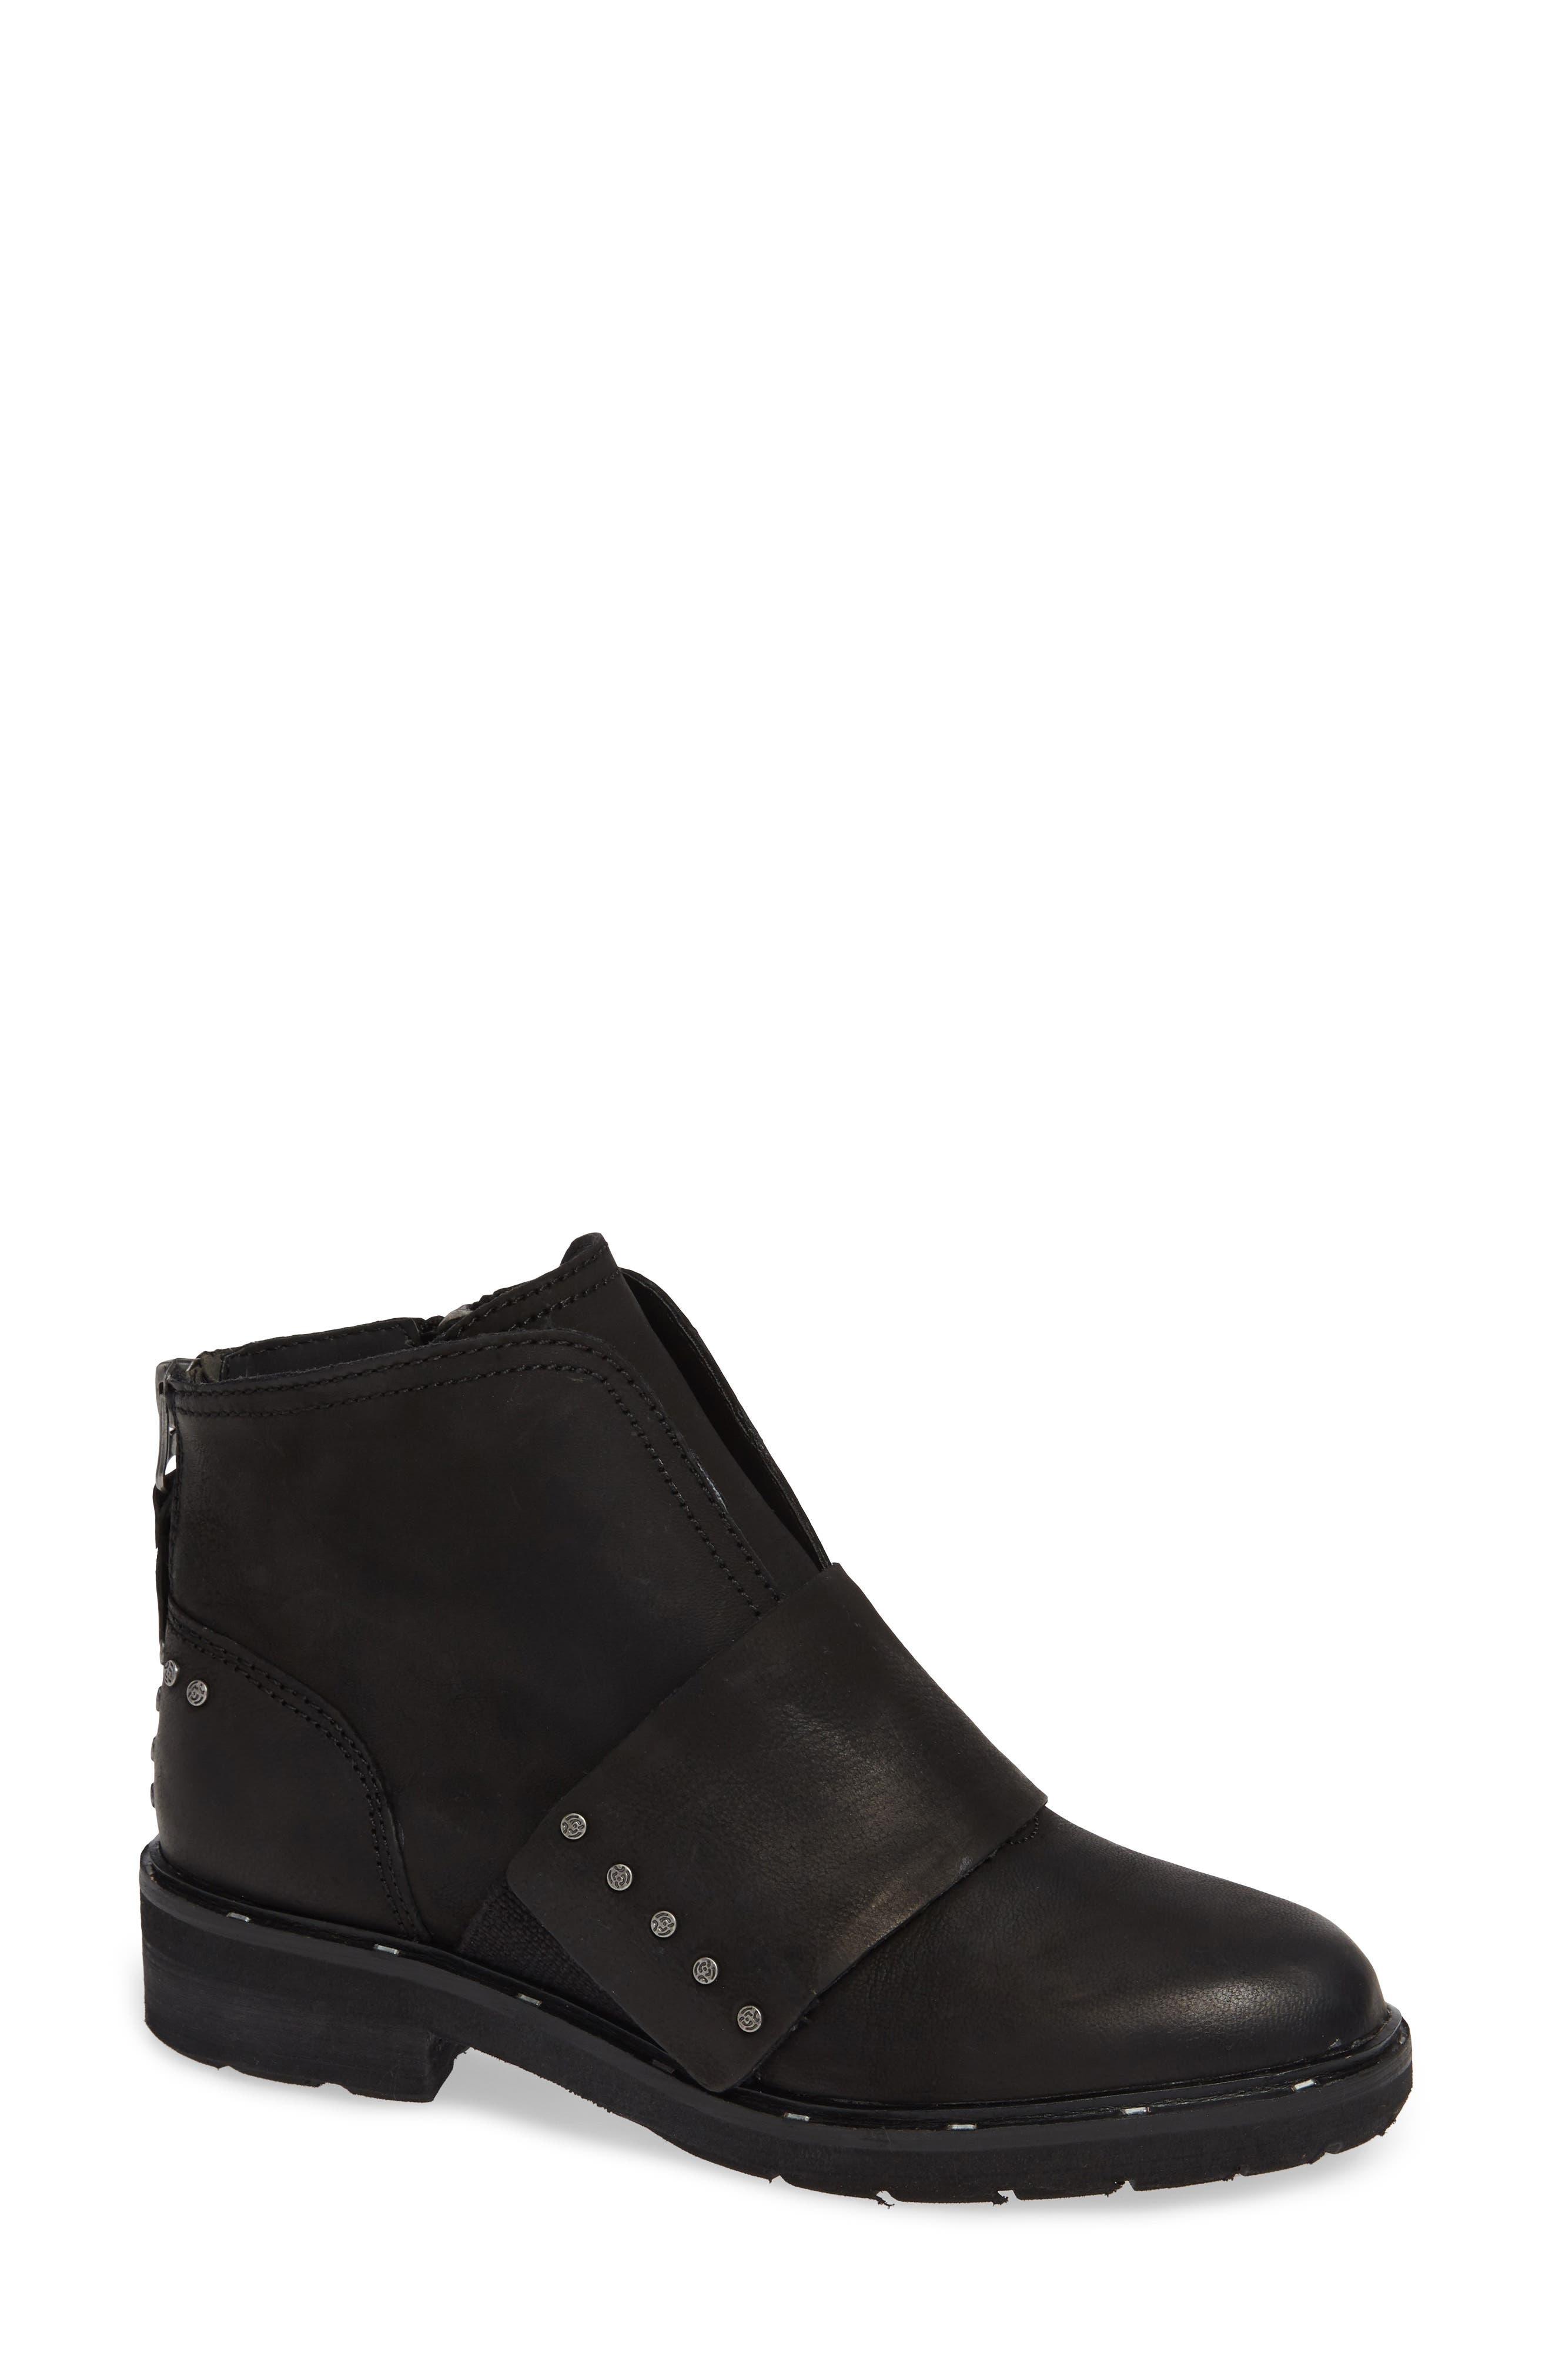 Frontage Bootie,                         Main,                         color, BLACK LEATHER